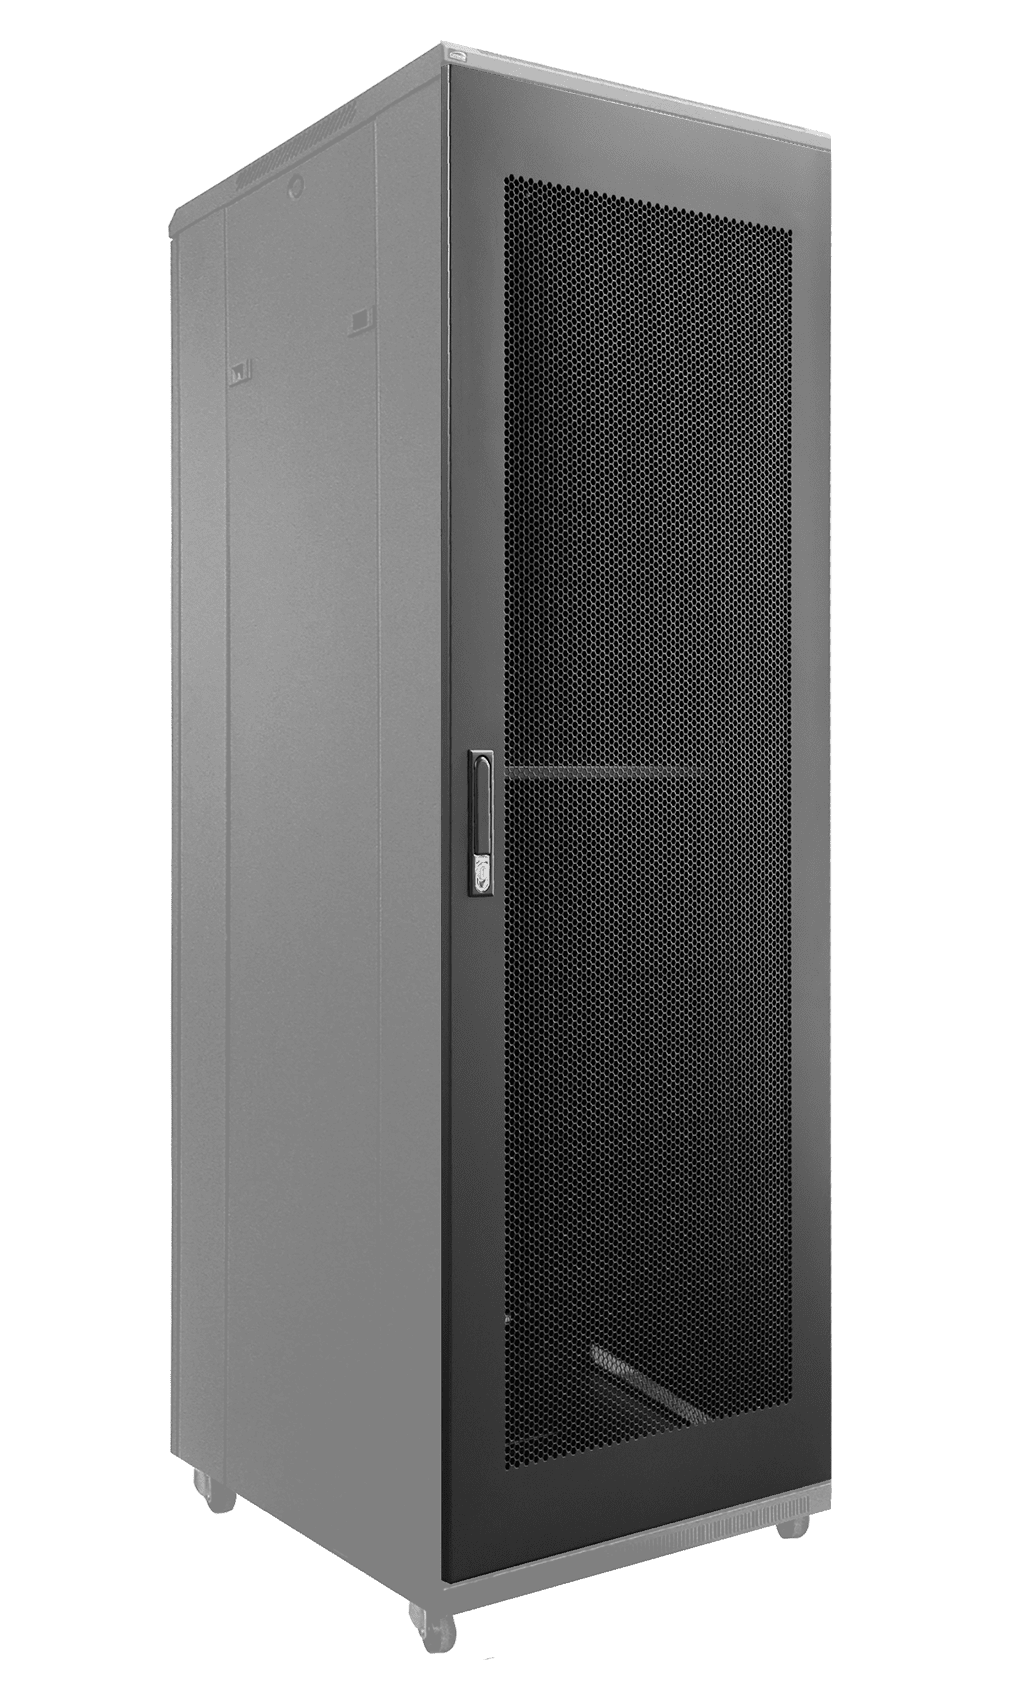 SPR42GL - Perforated grill door for 42HE SPR rack cabinet